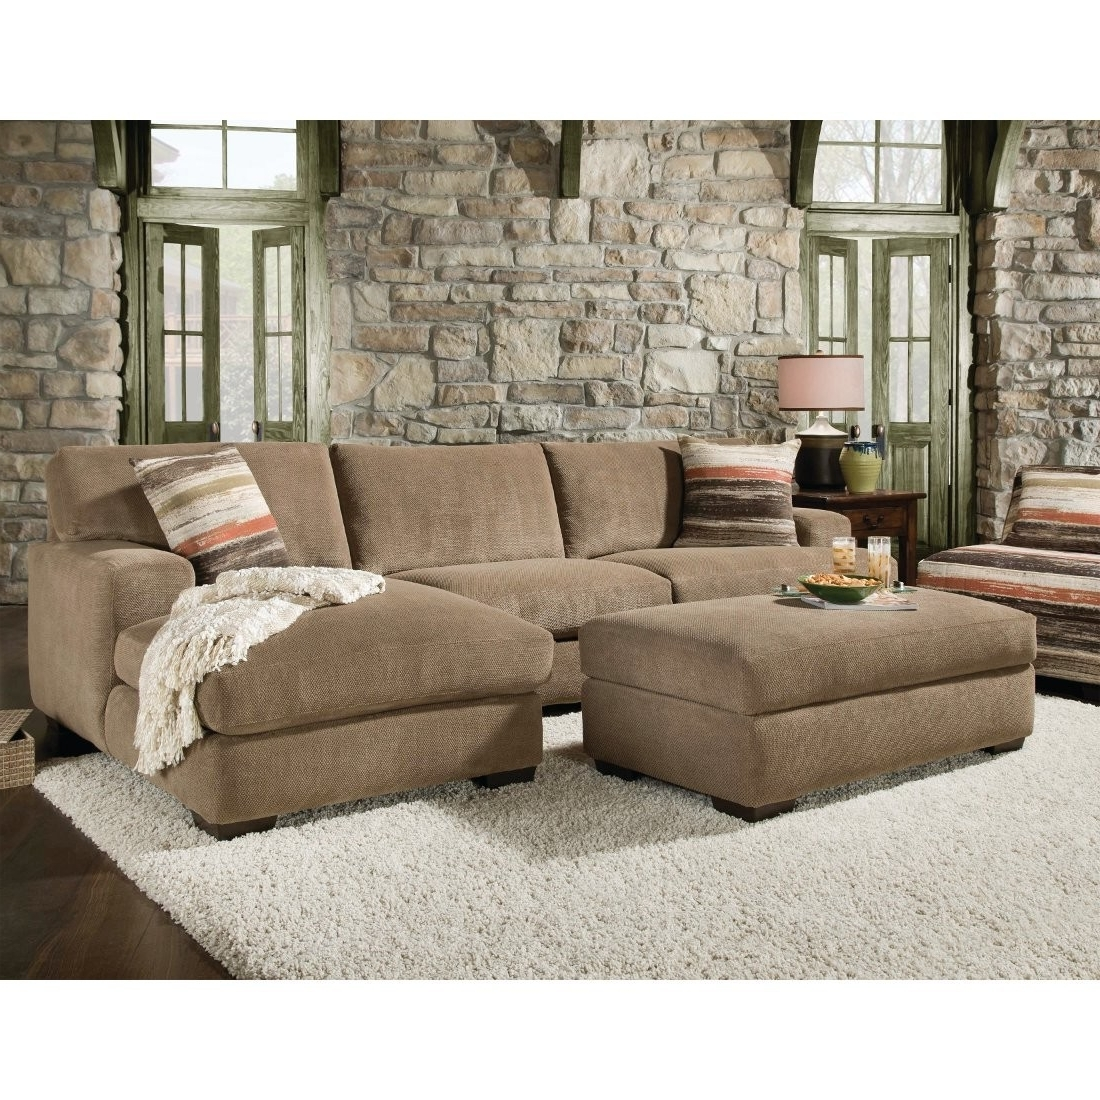 Long Sectional Sofas With Chaise Inside Popular Beautiful Sectional Sofa With Chaise And Ottoman Pictures (View 4 of 20)